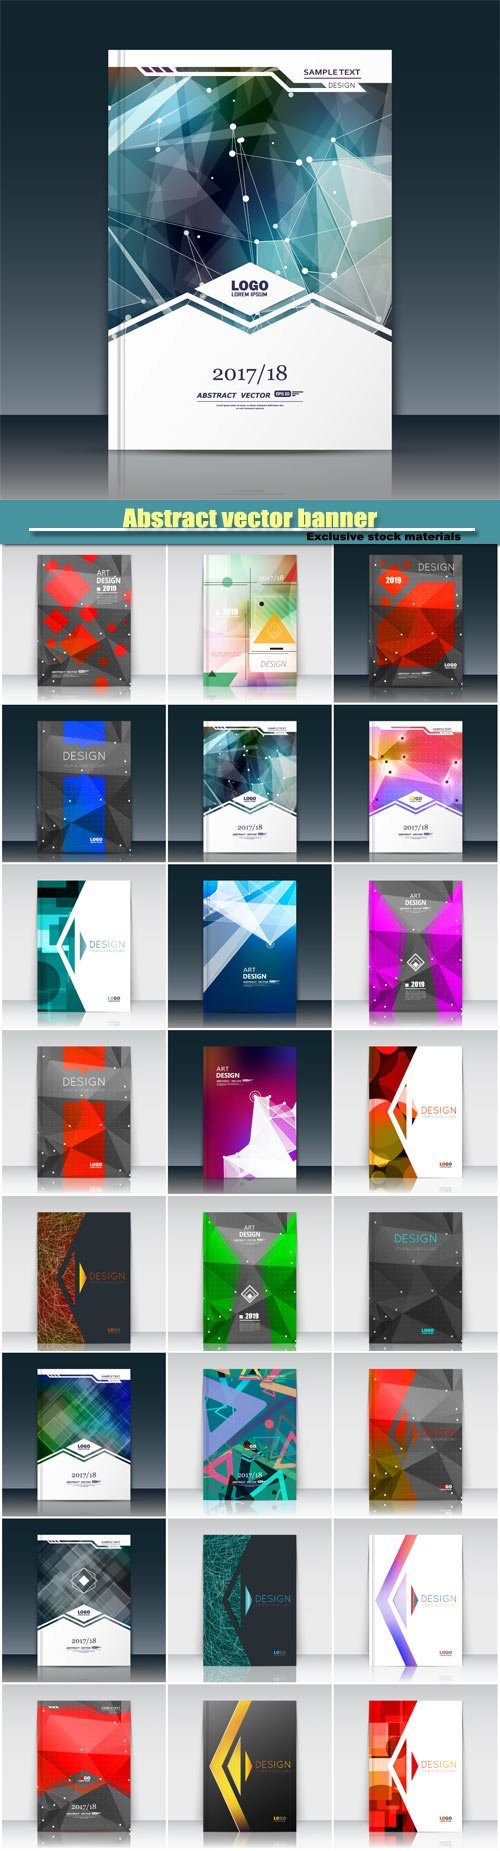 Abstract vector banner, brochure  template